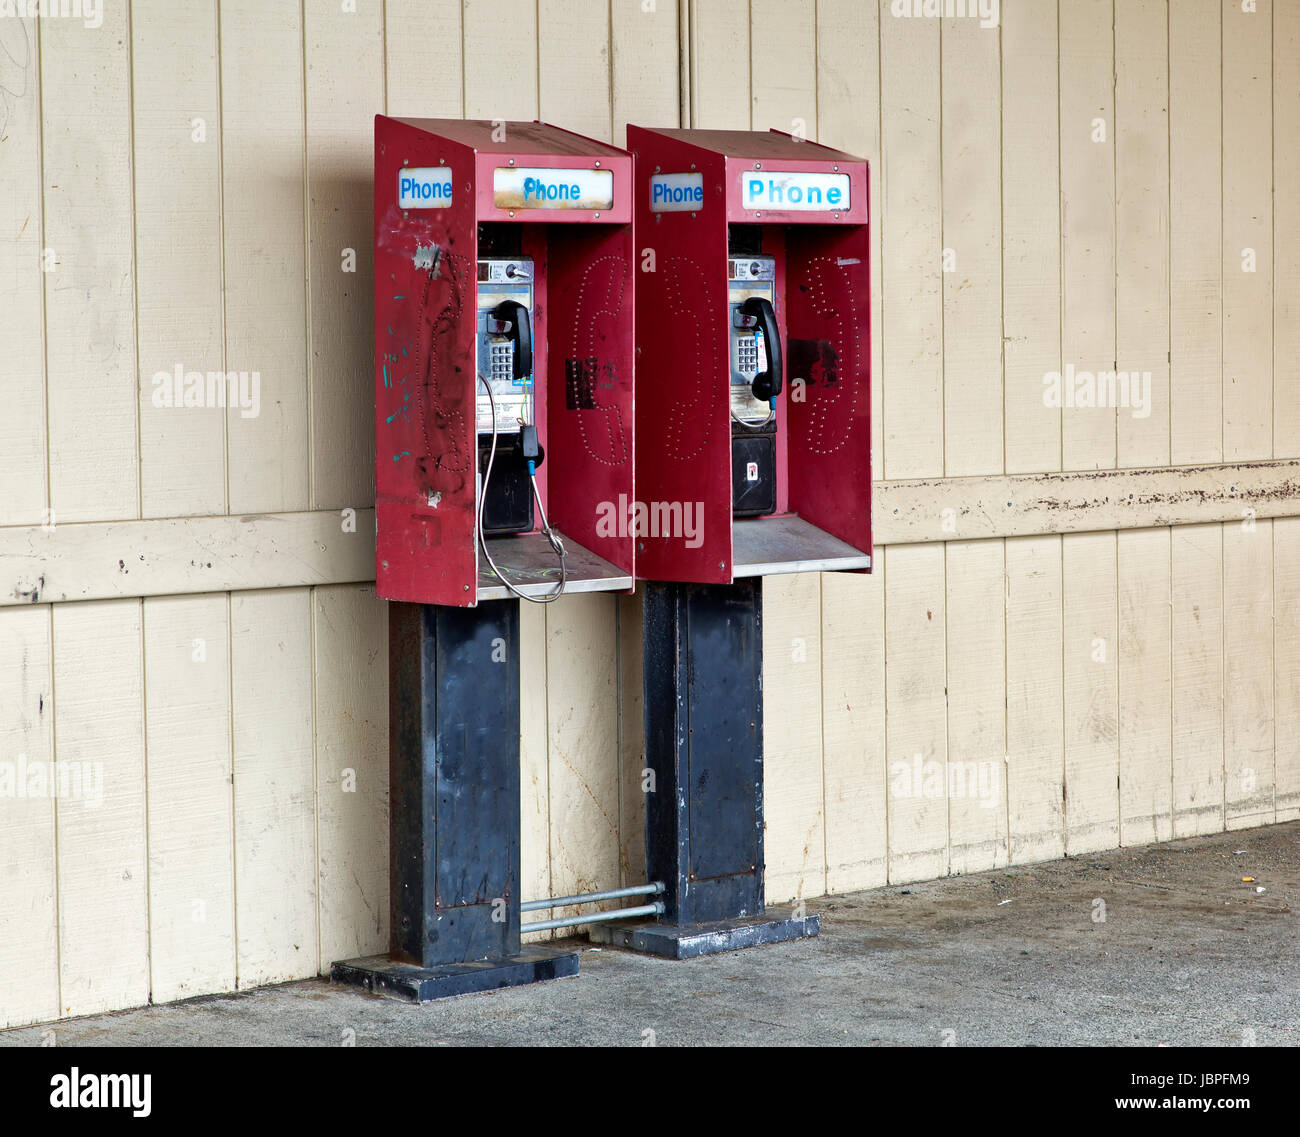 Abandoned coin operated public pay telephones with coin release slot. - Stock Image